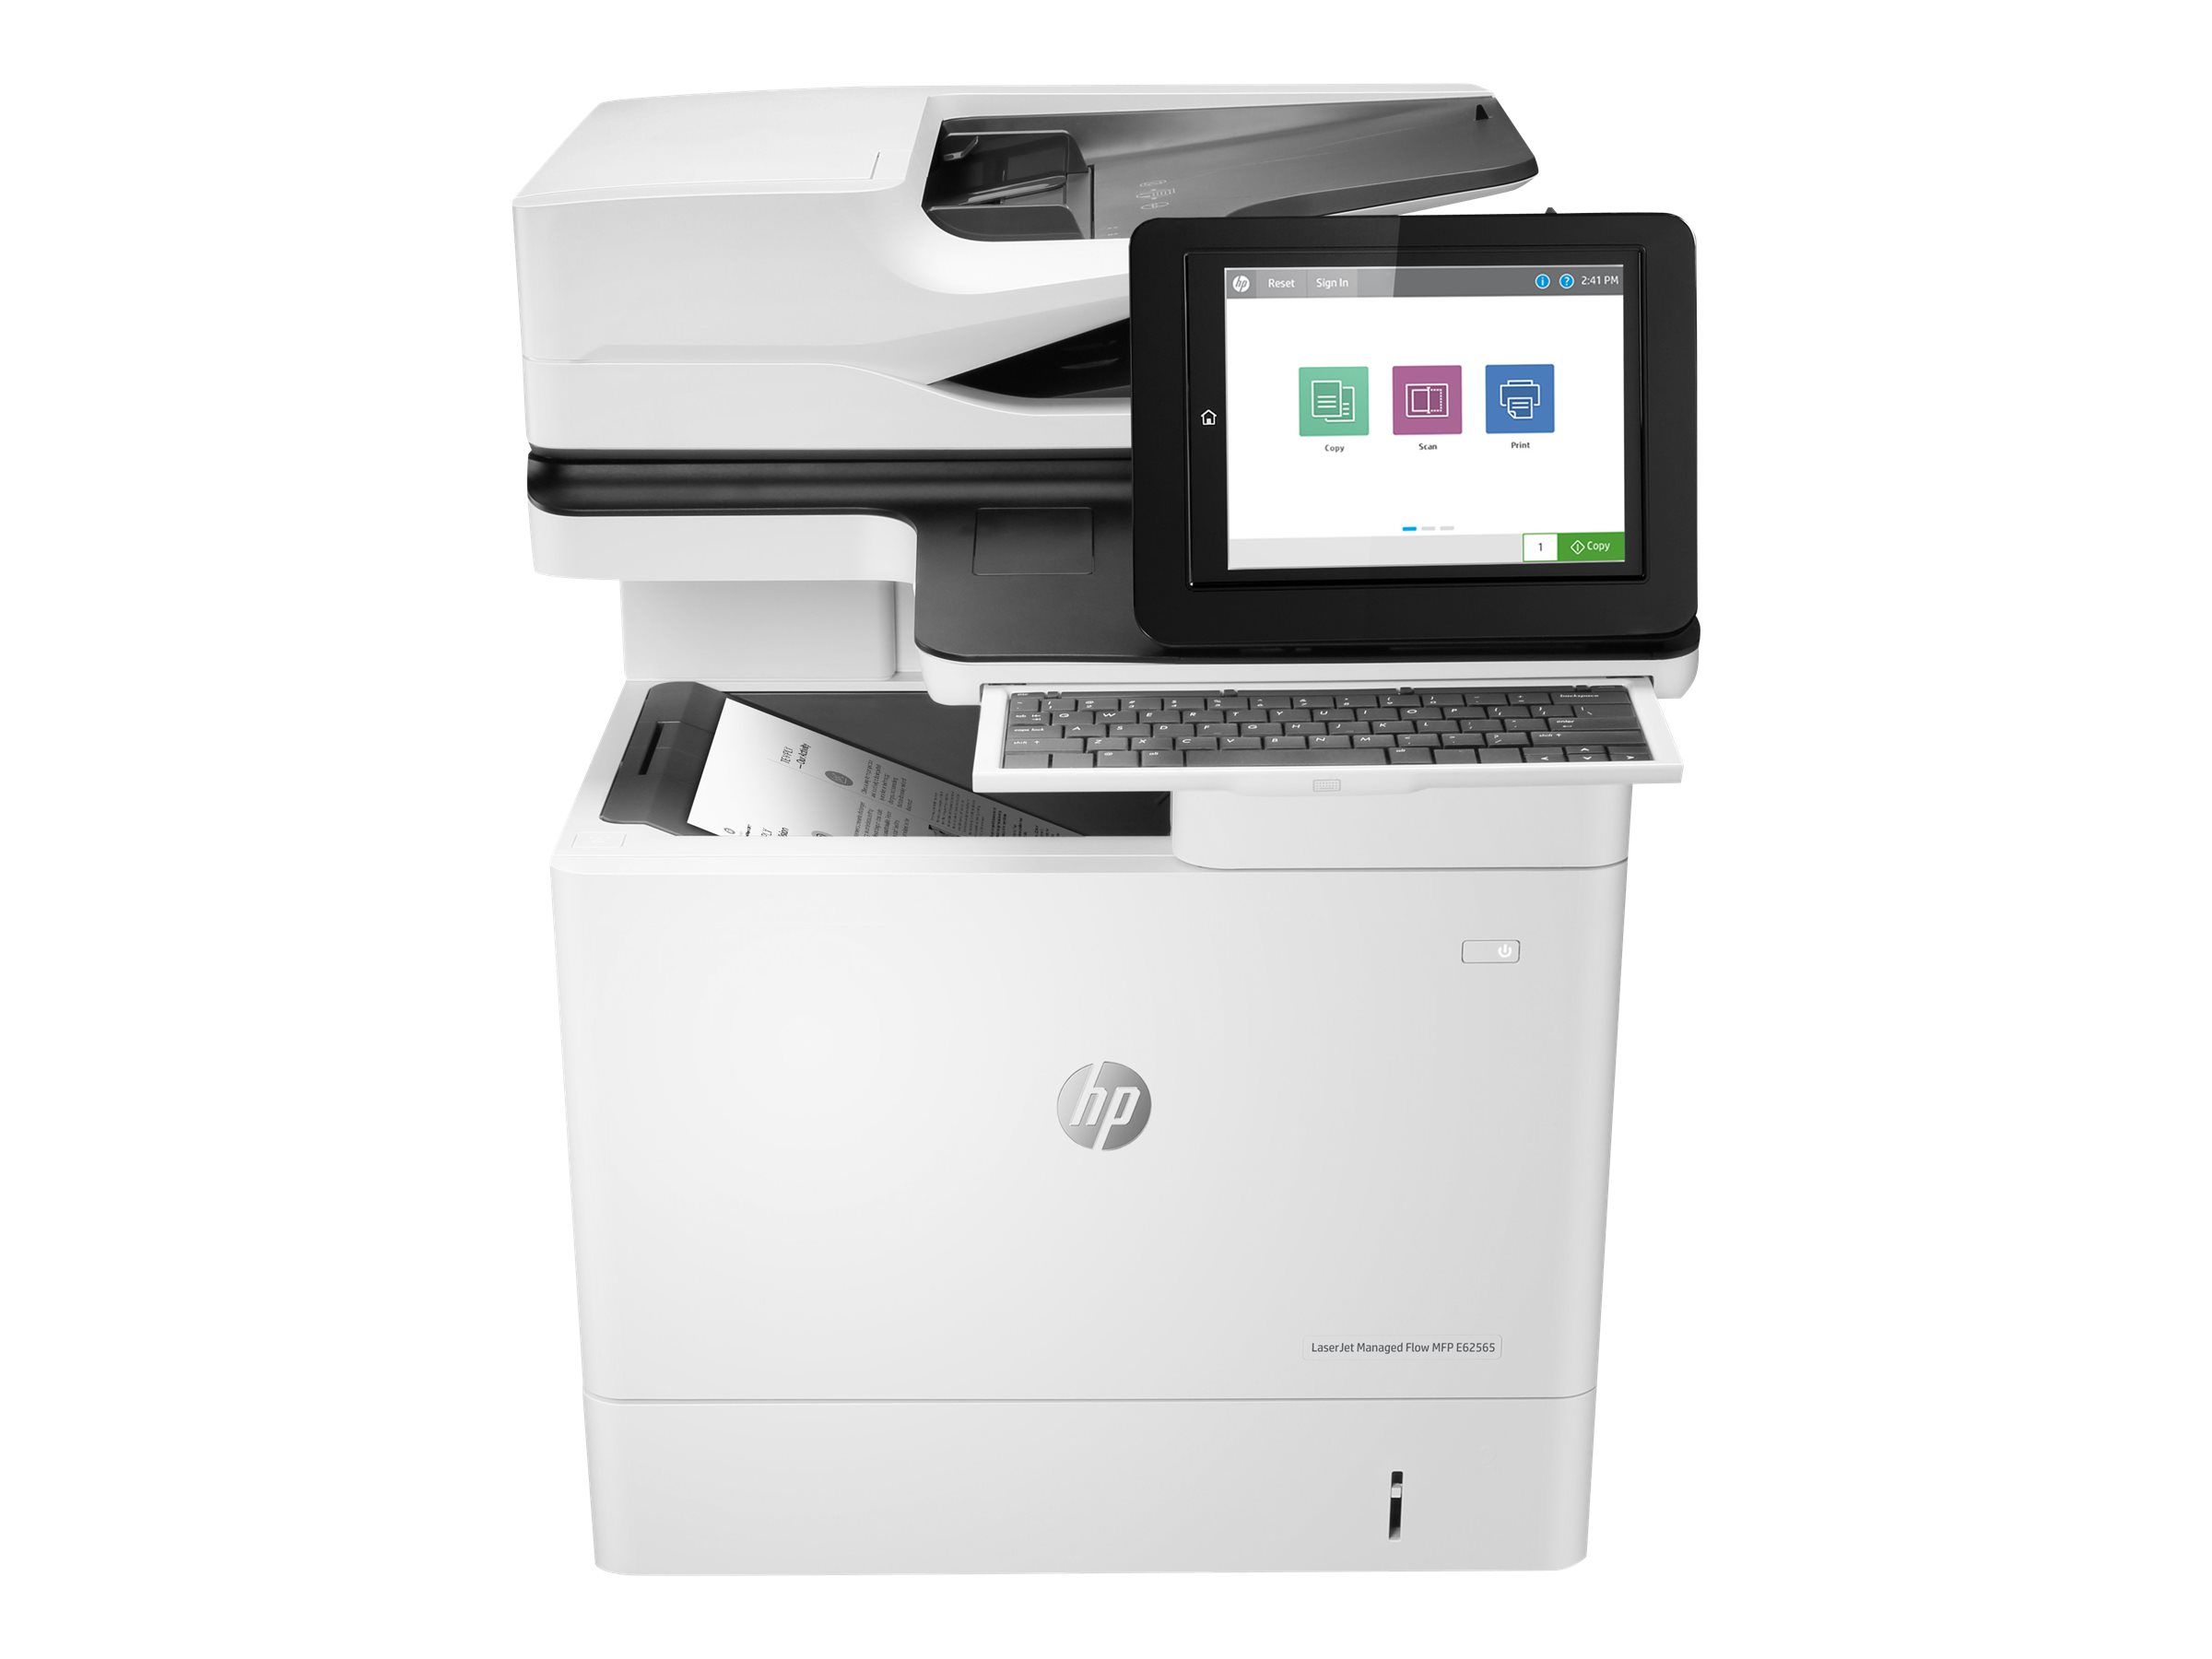 HP LaserJet Managed Flow MFP E62565h - multifunction printer (B/W) /  J8J74A#B19 / HP / Printers - Multifunction / Printing / Products /  Communications ...